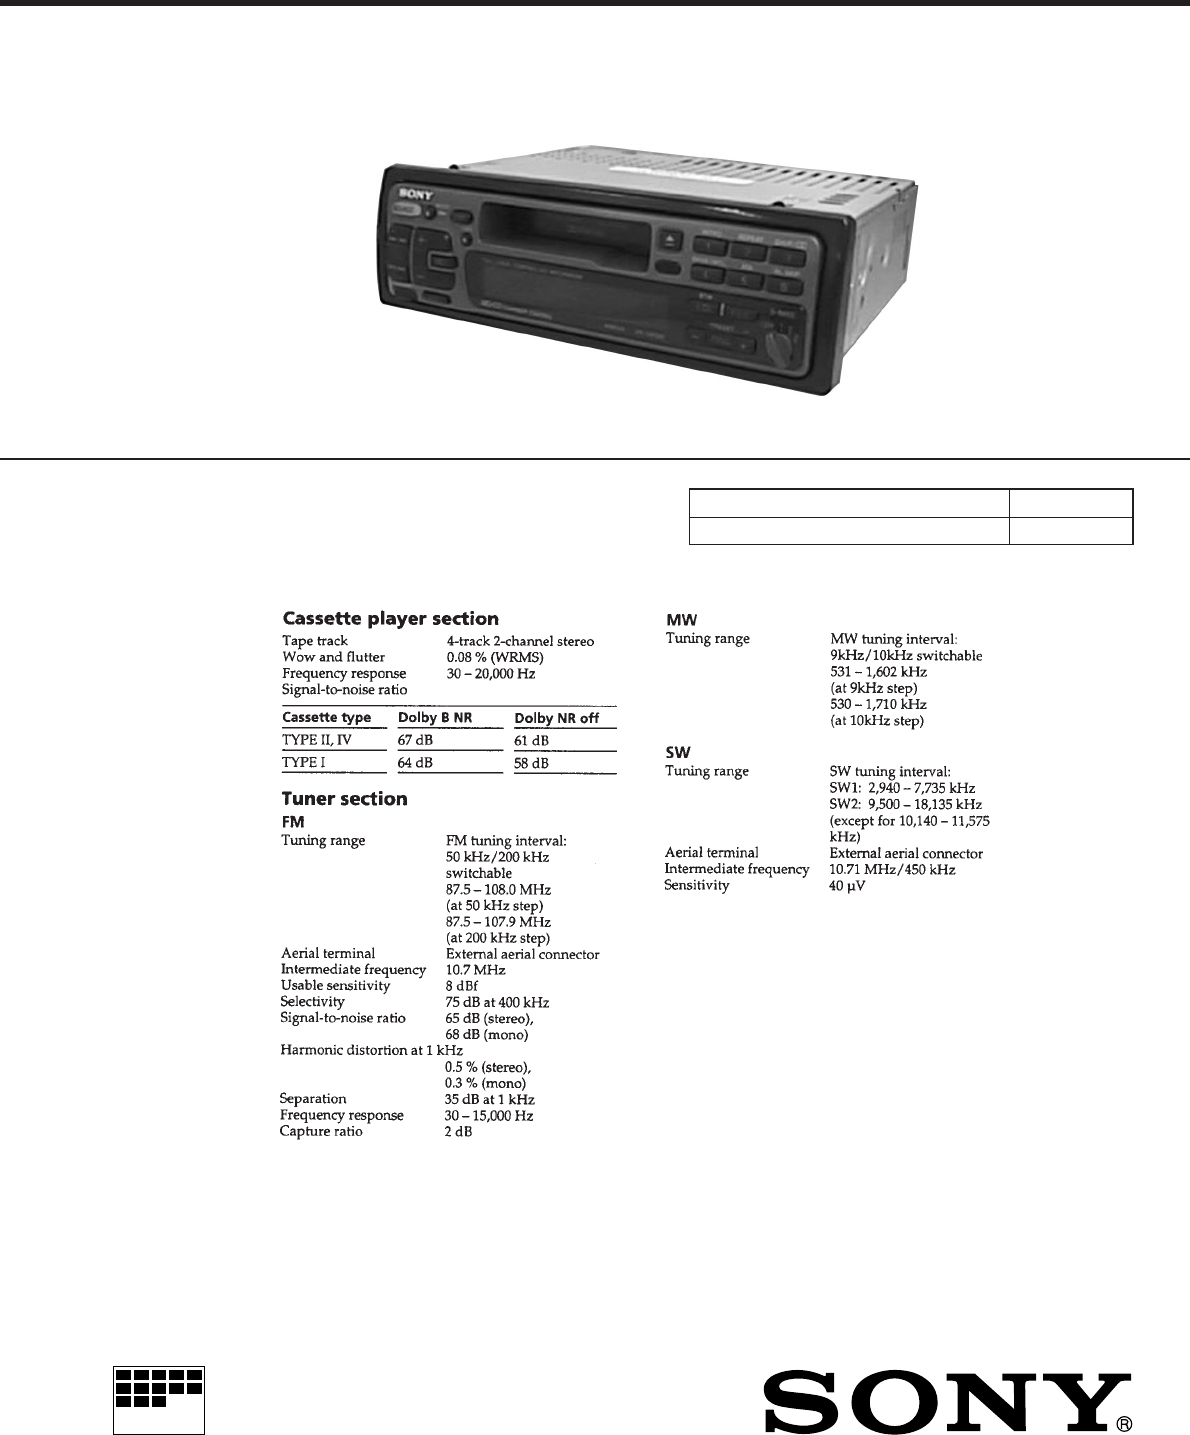 Sony Car Stereo Manual